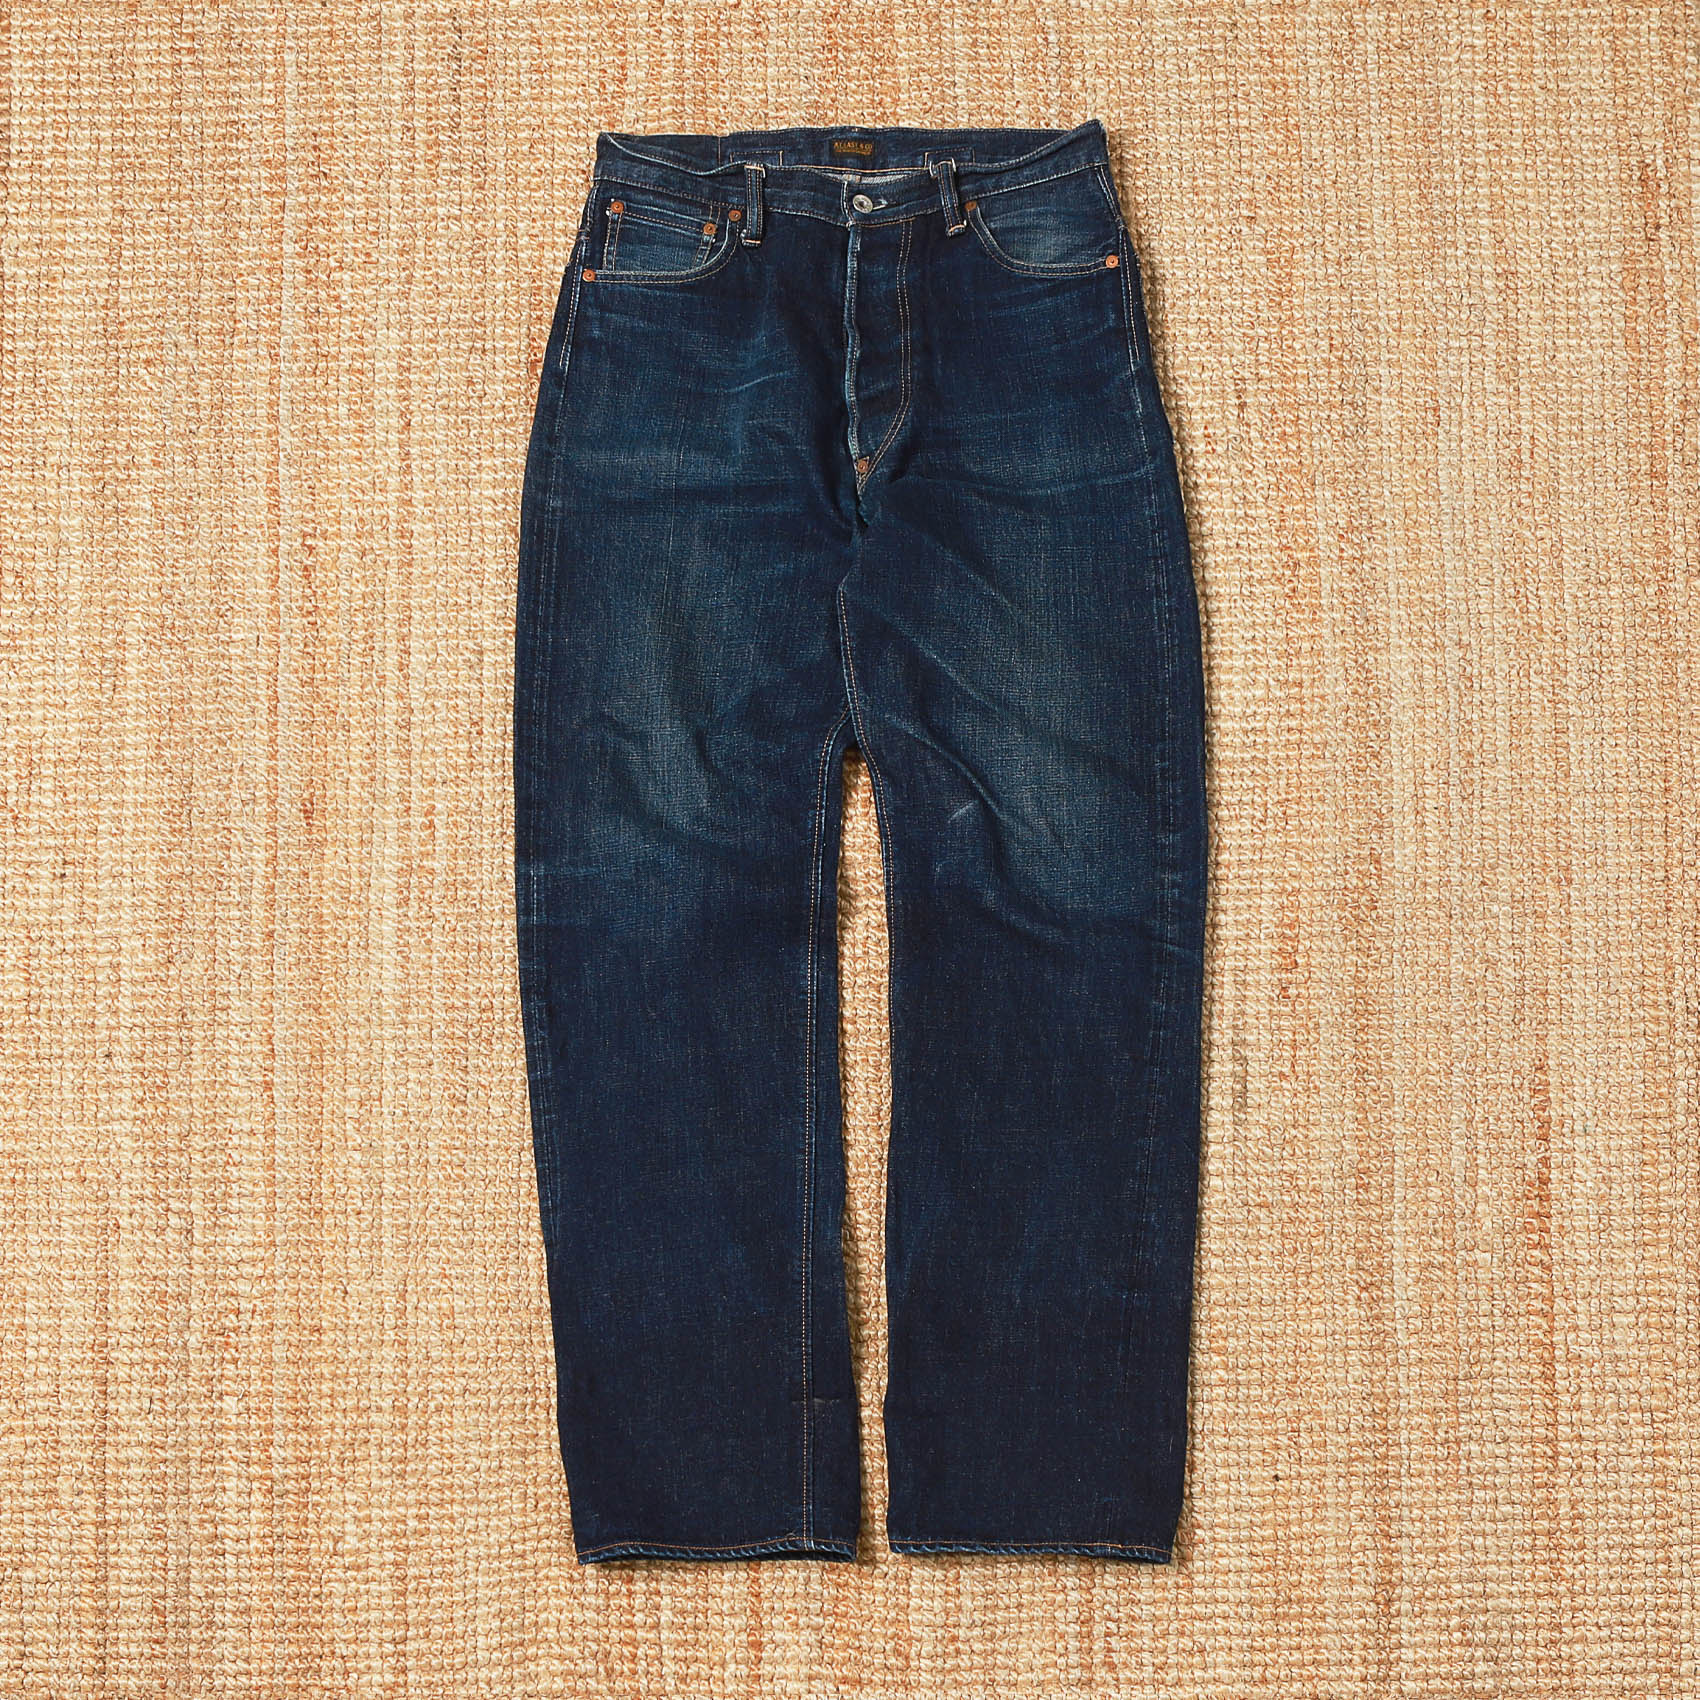 AT LAST & CO DENIM JEANS